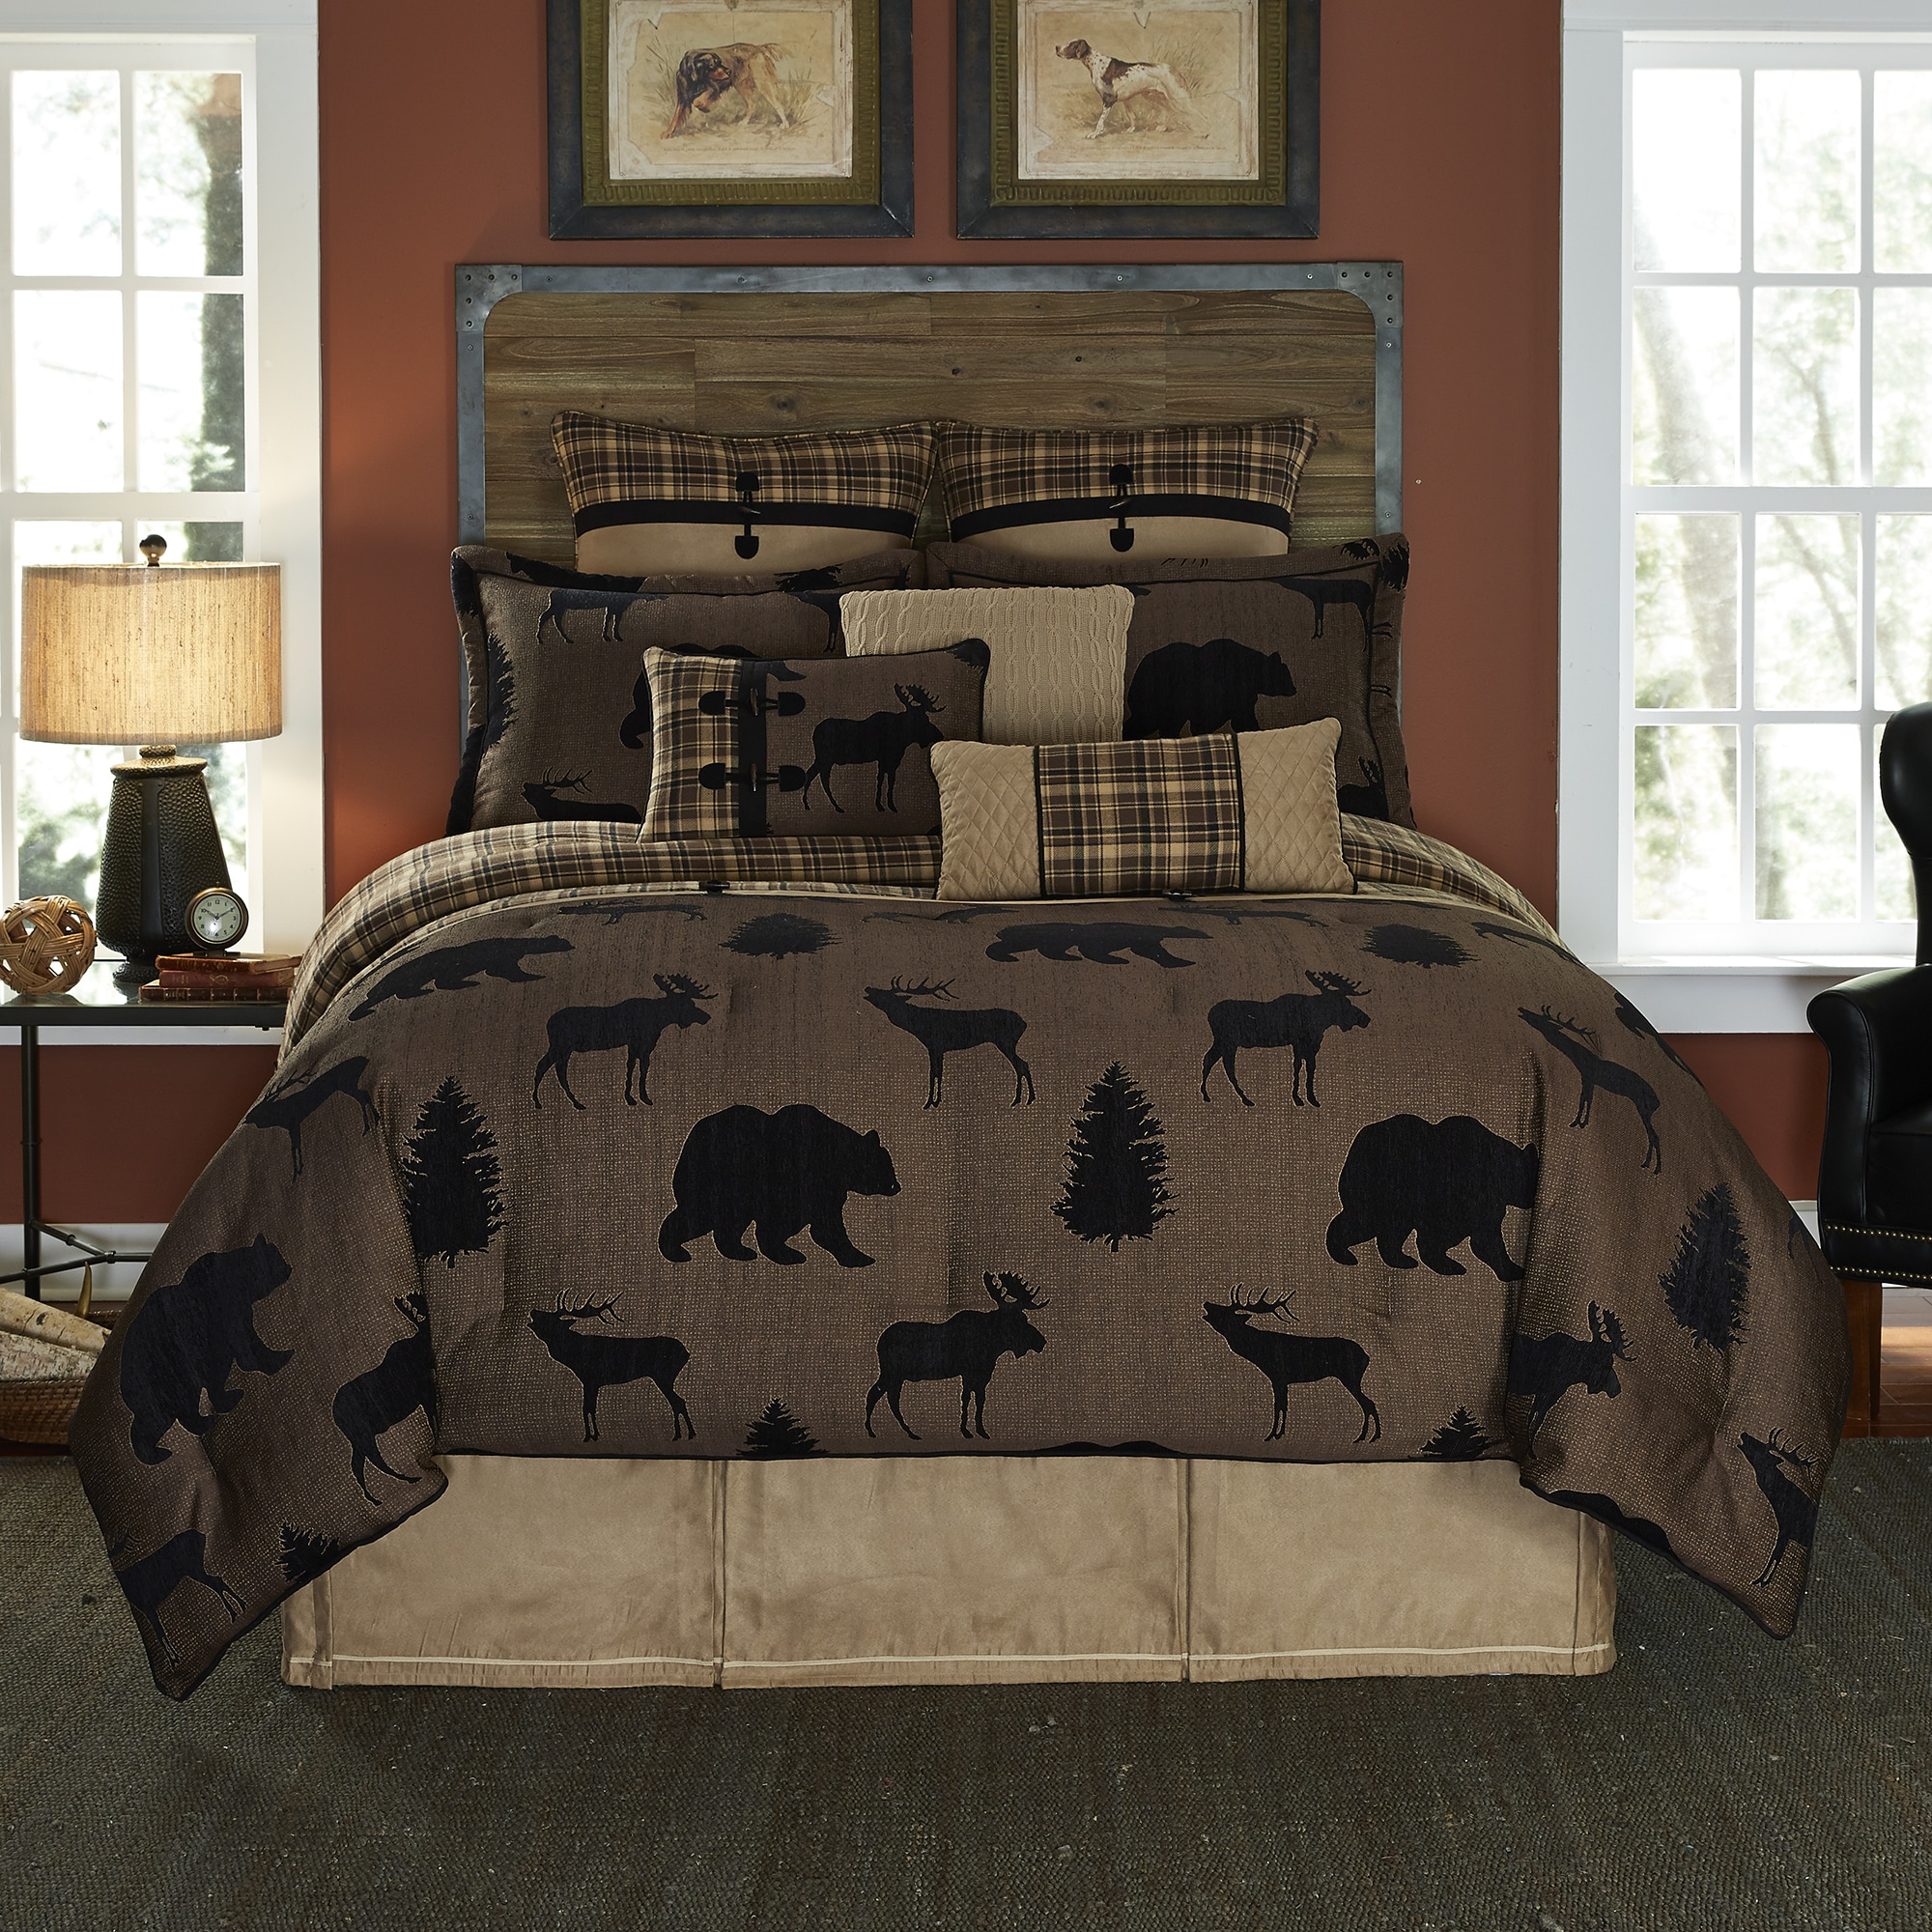 cabins comforters american southwest pin woods hunting set native forest pattern cabin bedding comforter bear queen lodge themed brown